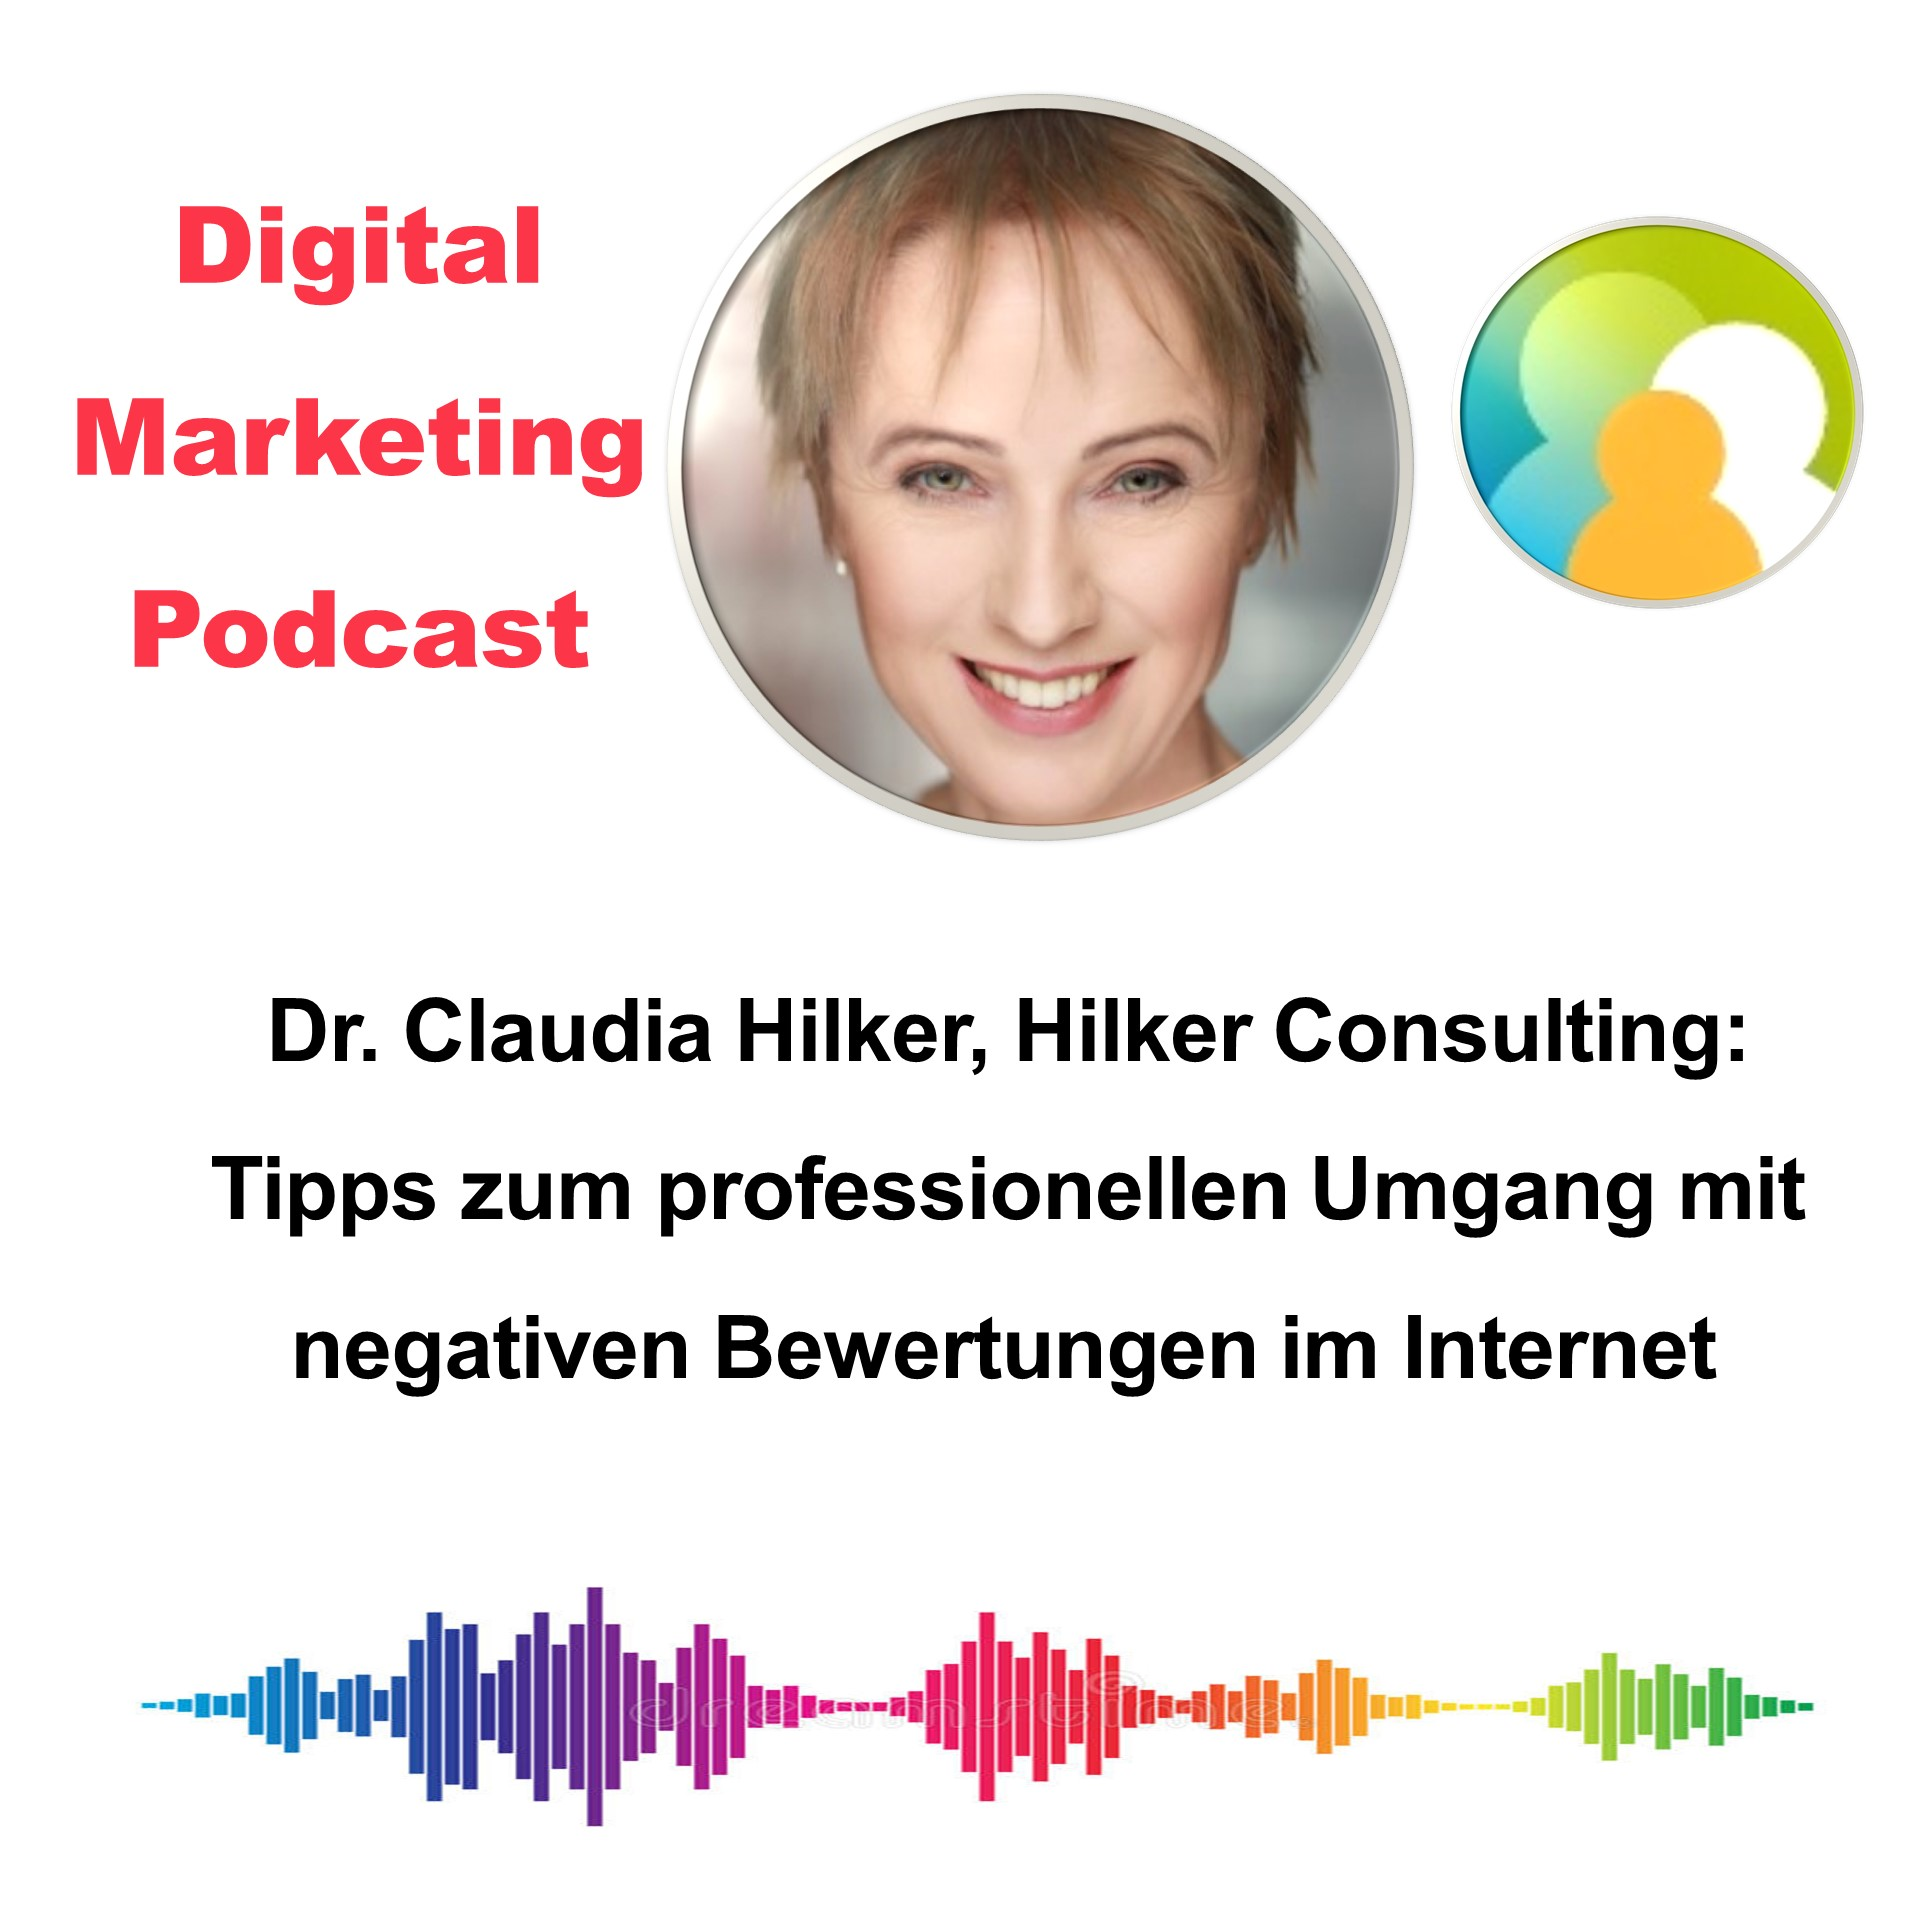 Digital Marketing Podcast_Umgang negative Bewertungen online_Claudia Hilker